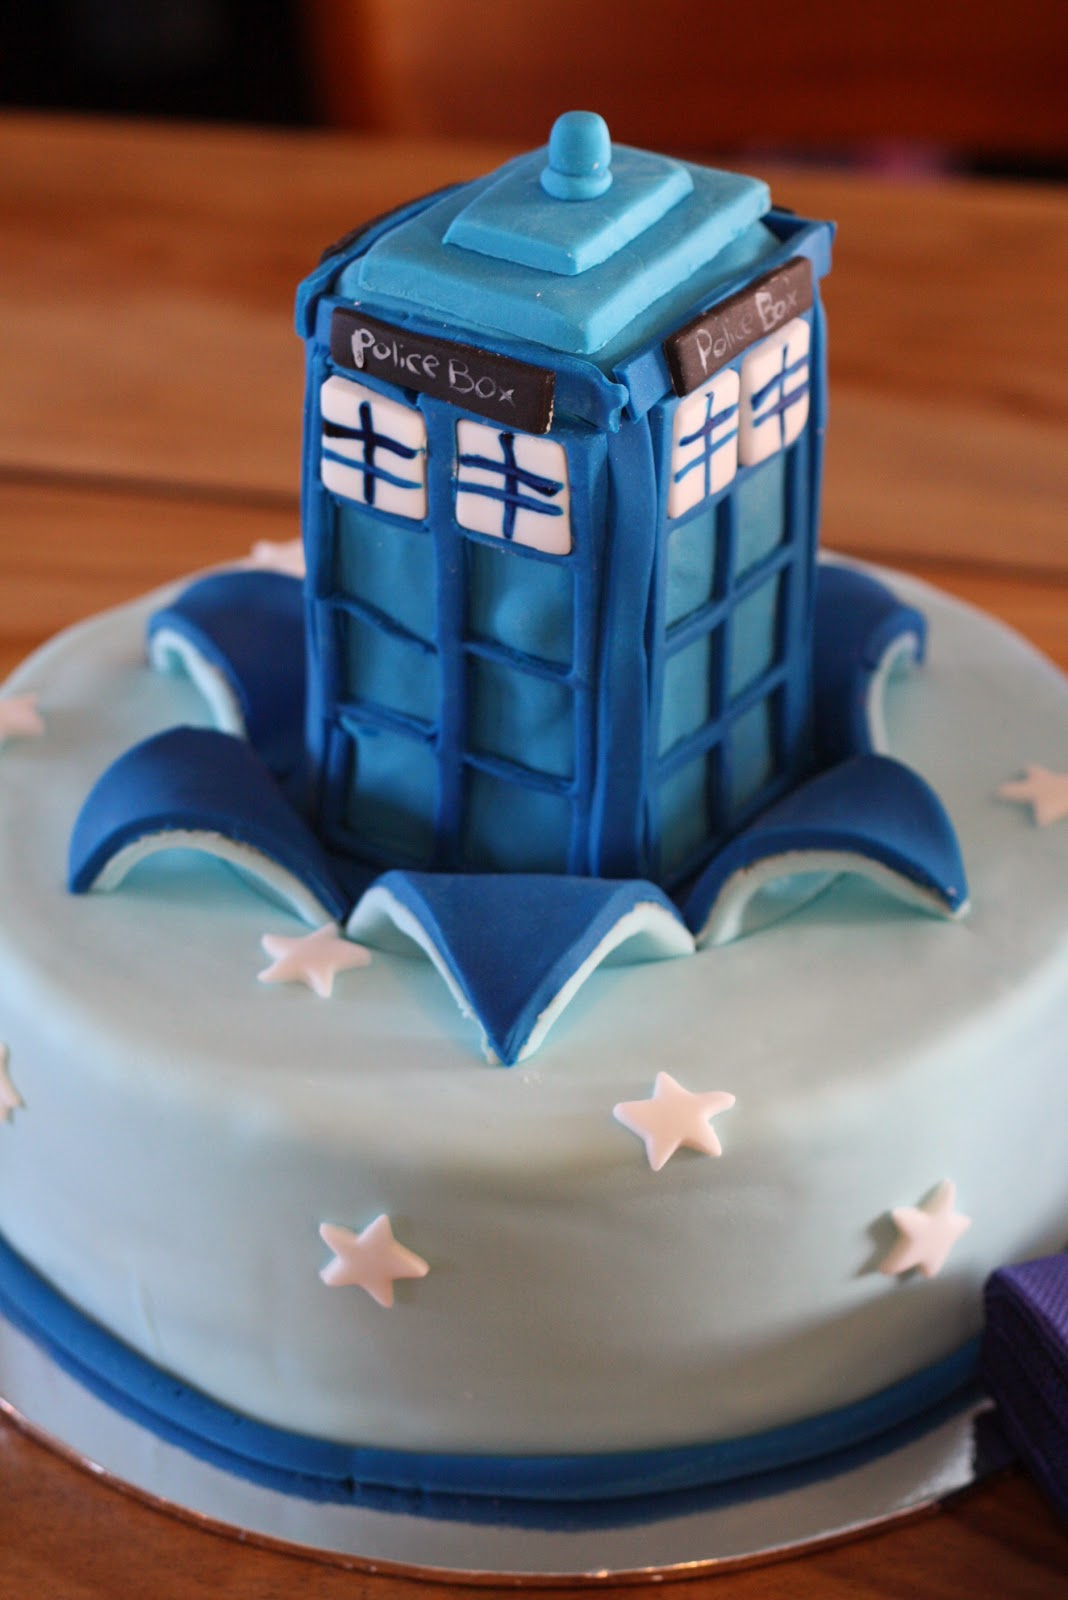 A blue cake with a fondant-ed tardis sitting on top.